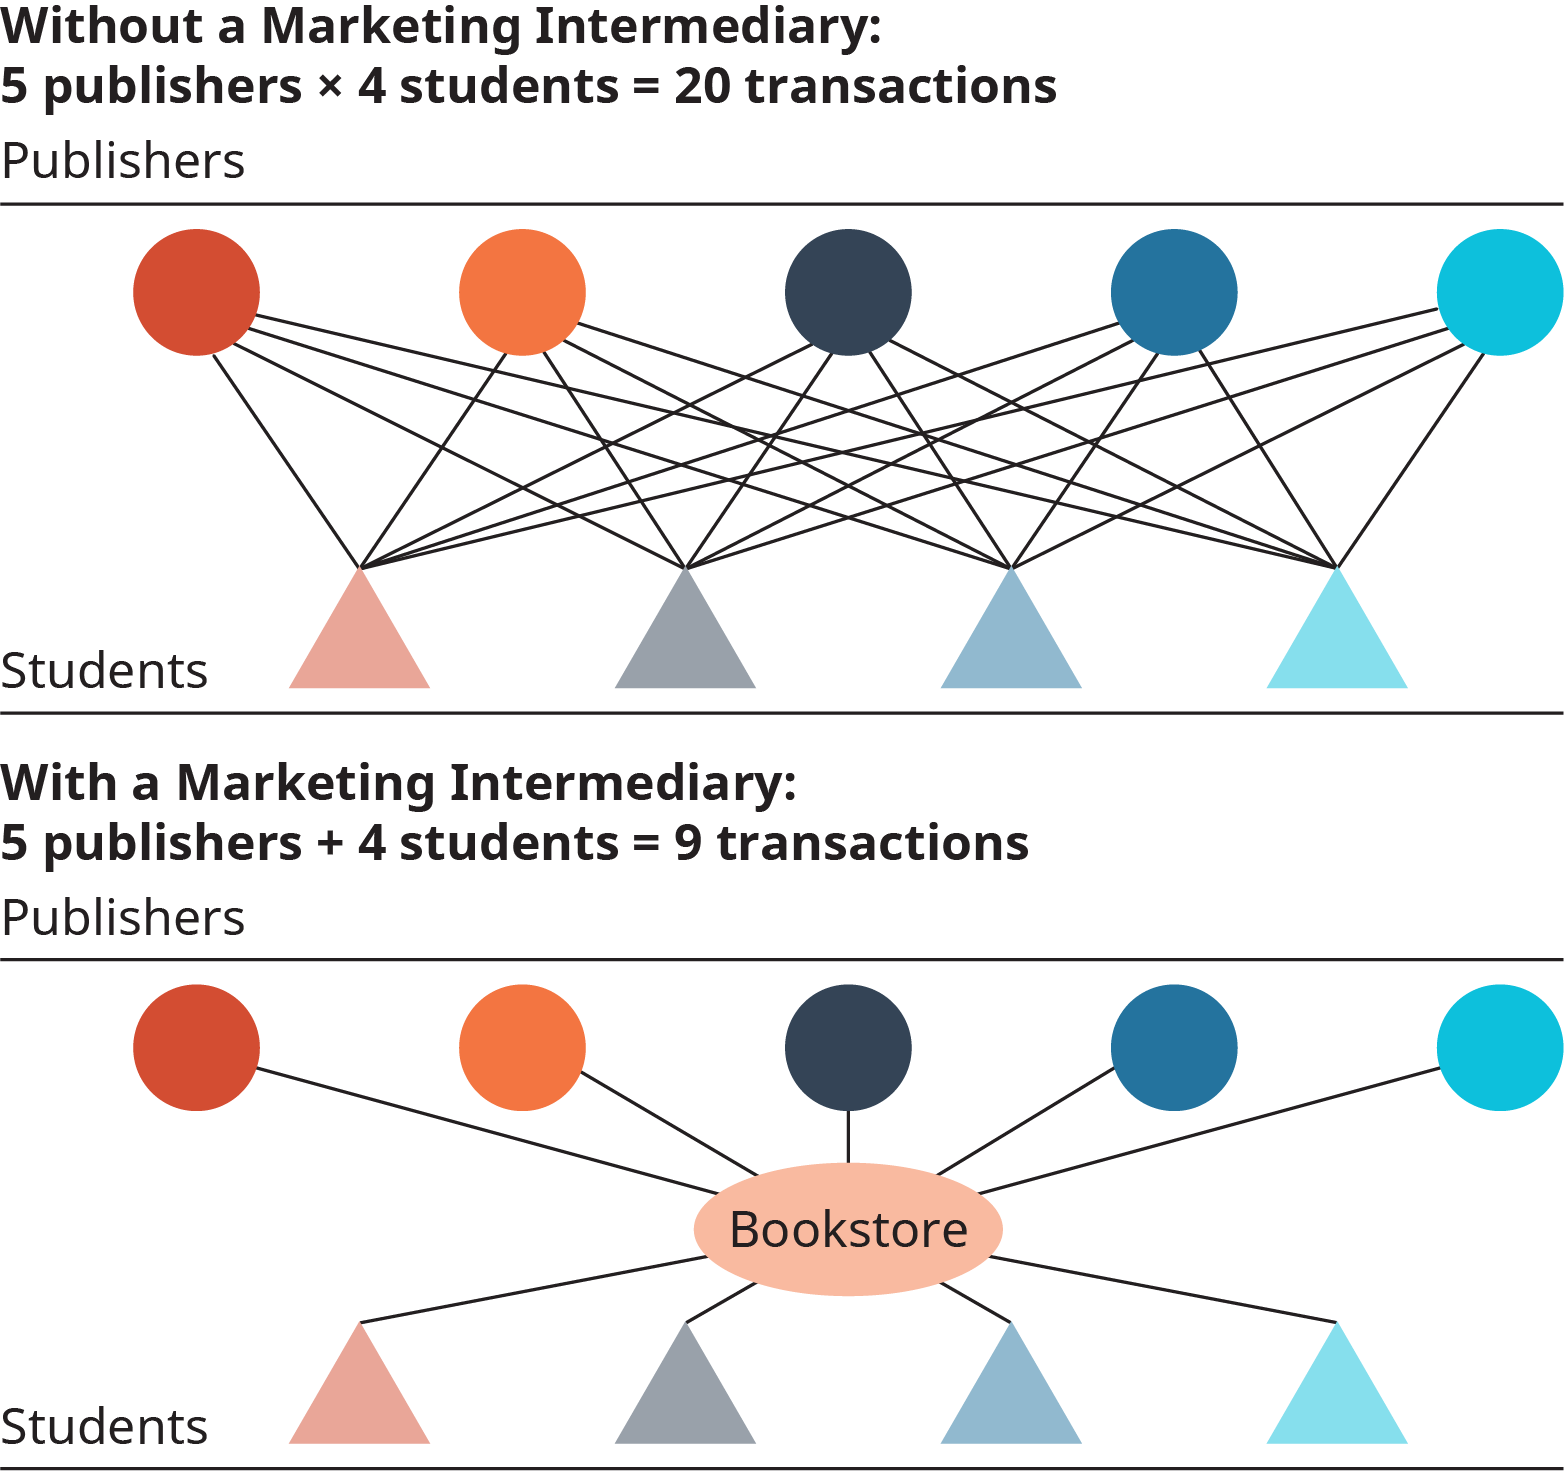 In both diagrams, the publishers are shown as circles, and the students as triangles. The first diagram is titled, without a marketing intermediary; 5 publishers times 4 students equals 20 transactions. There are 4 lines extending from each publisher to each student. The second diagram is titled, with a marketing intermediary; 5 publishers plus 4 students equal 9 transactions. A line extends from each publisher and student to a central bookstore.